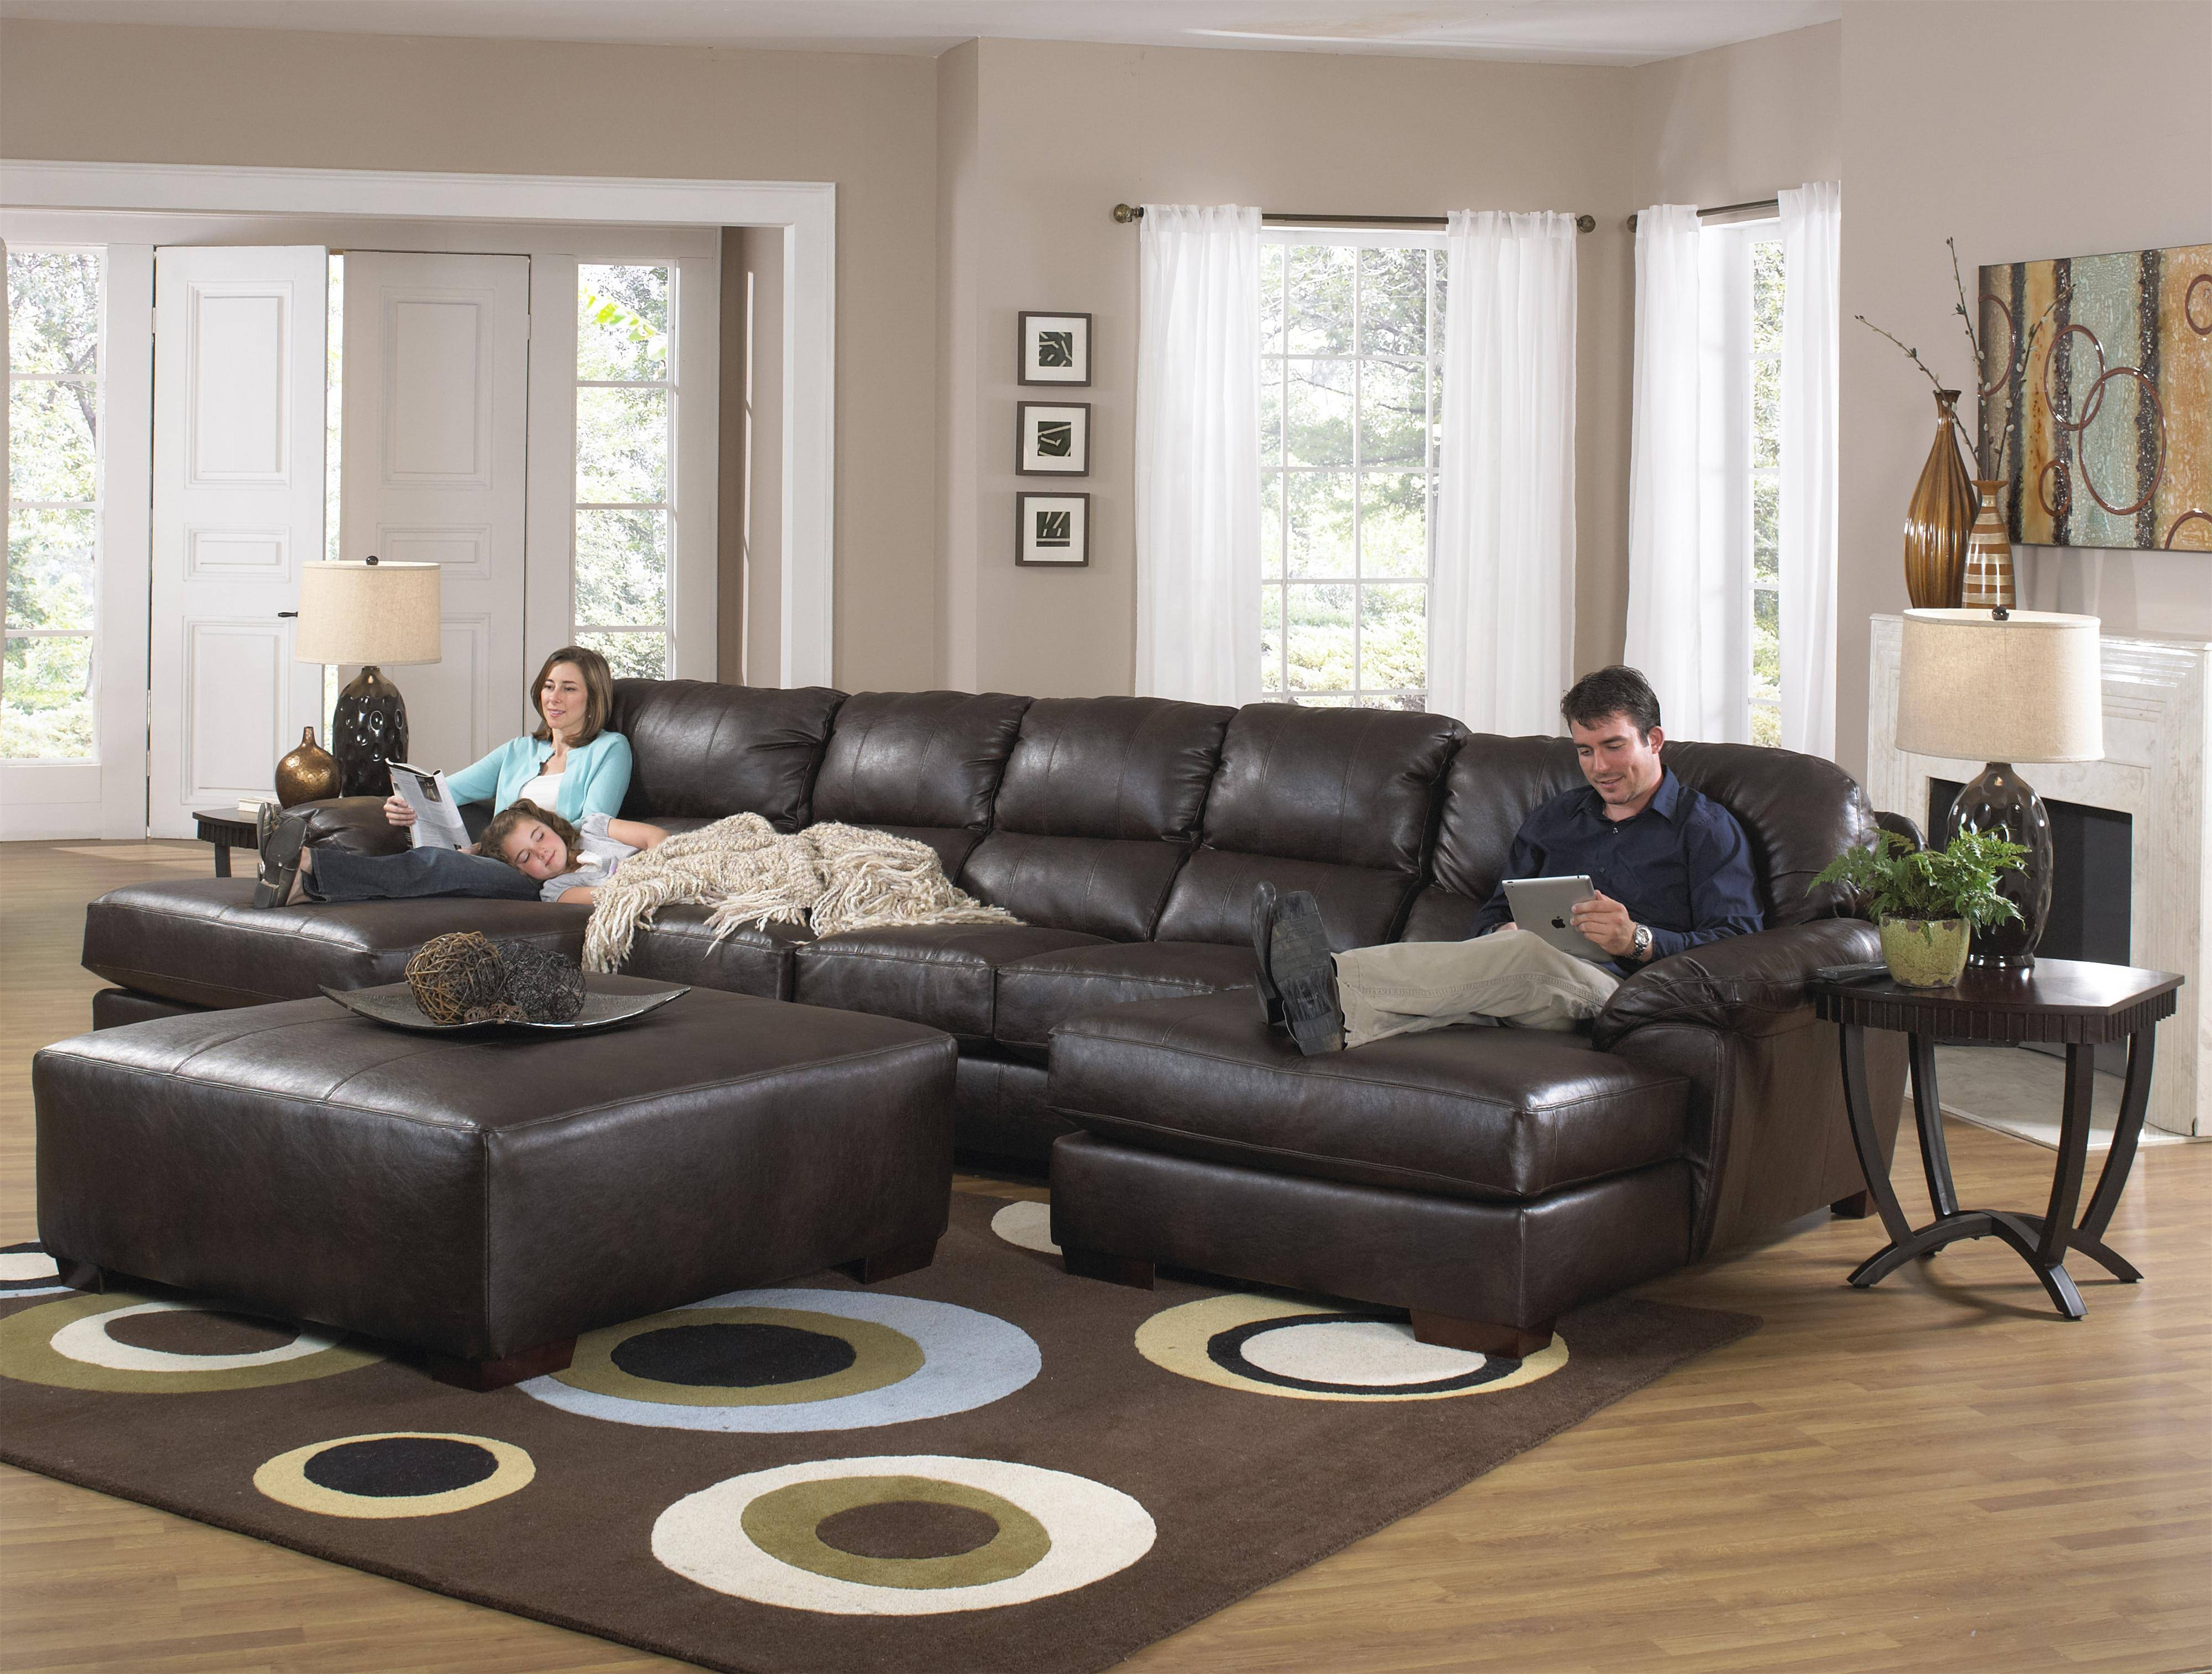 Two Chaise Sectional Sofa With Five Total Seatsjackson within 2 Seat Sectional Sofas (Image 28 of 30)